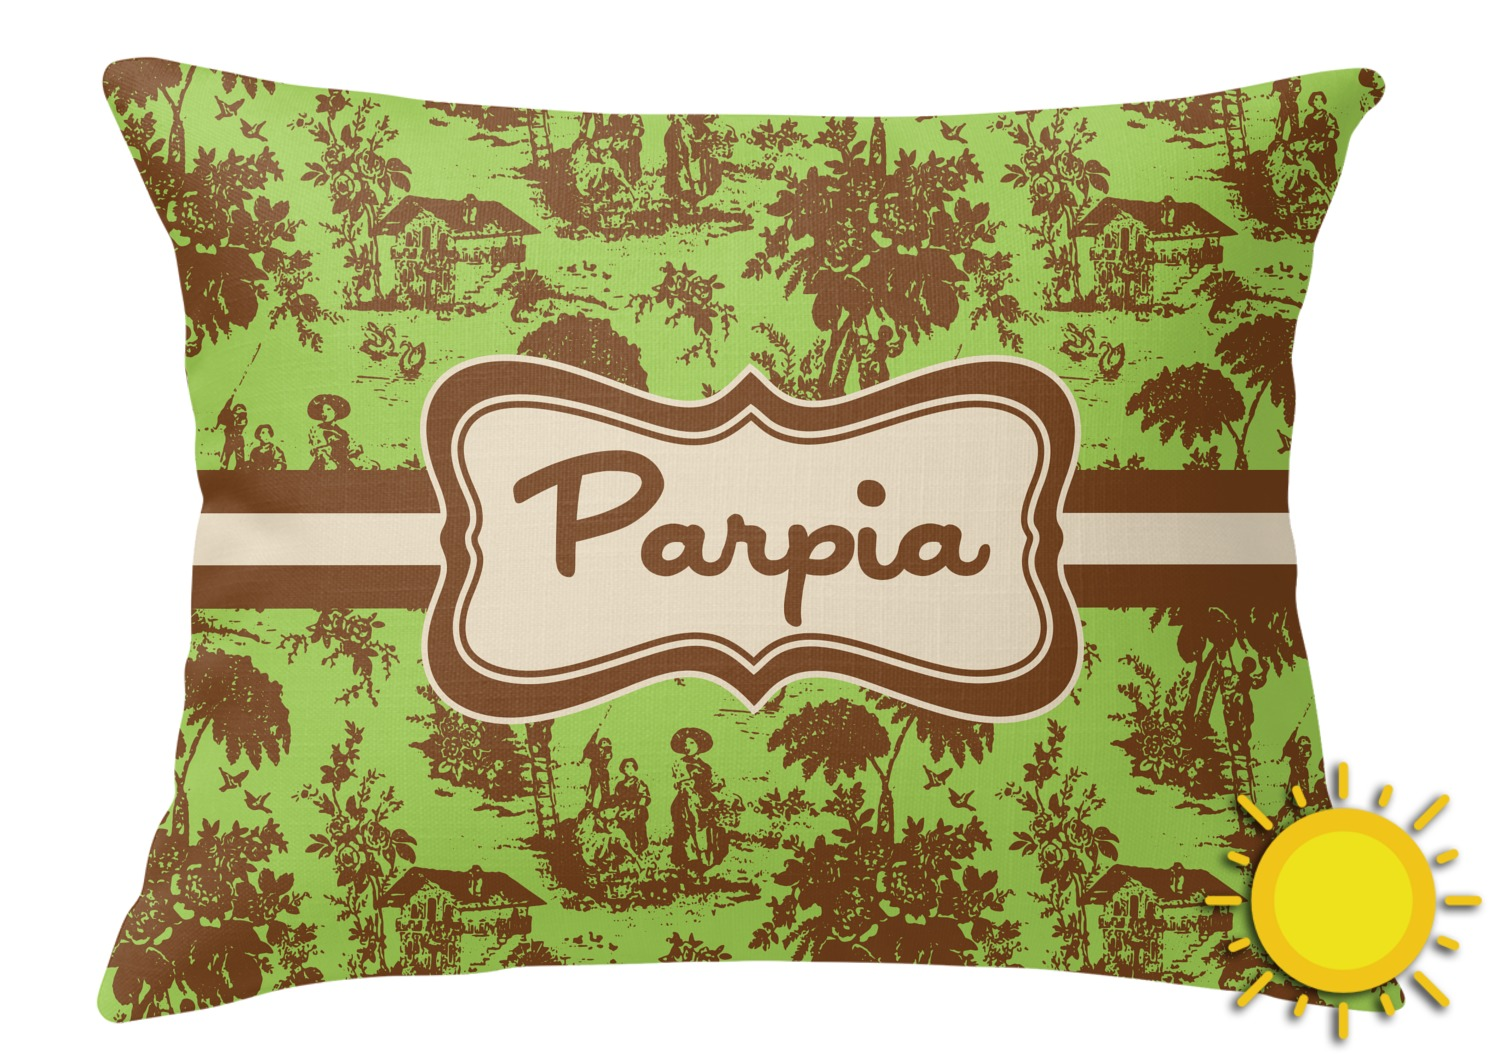 Brown Rectangular Throw Pillow : Green & Brown Toile Outdoor Throw Pillow (Rectangular) (Personalized) - RNK Shops